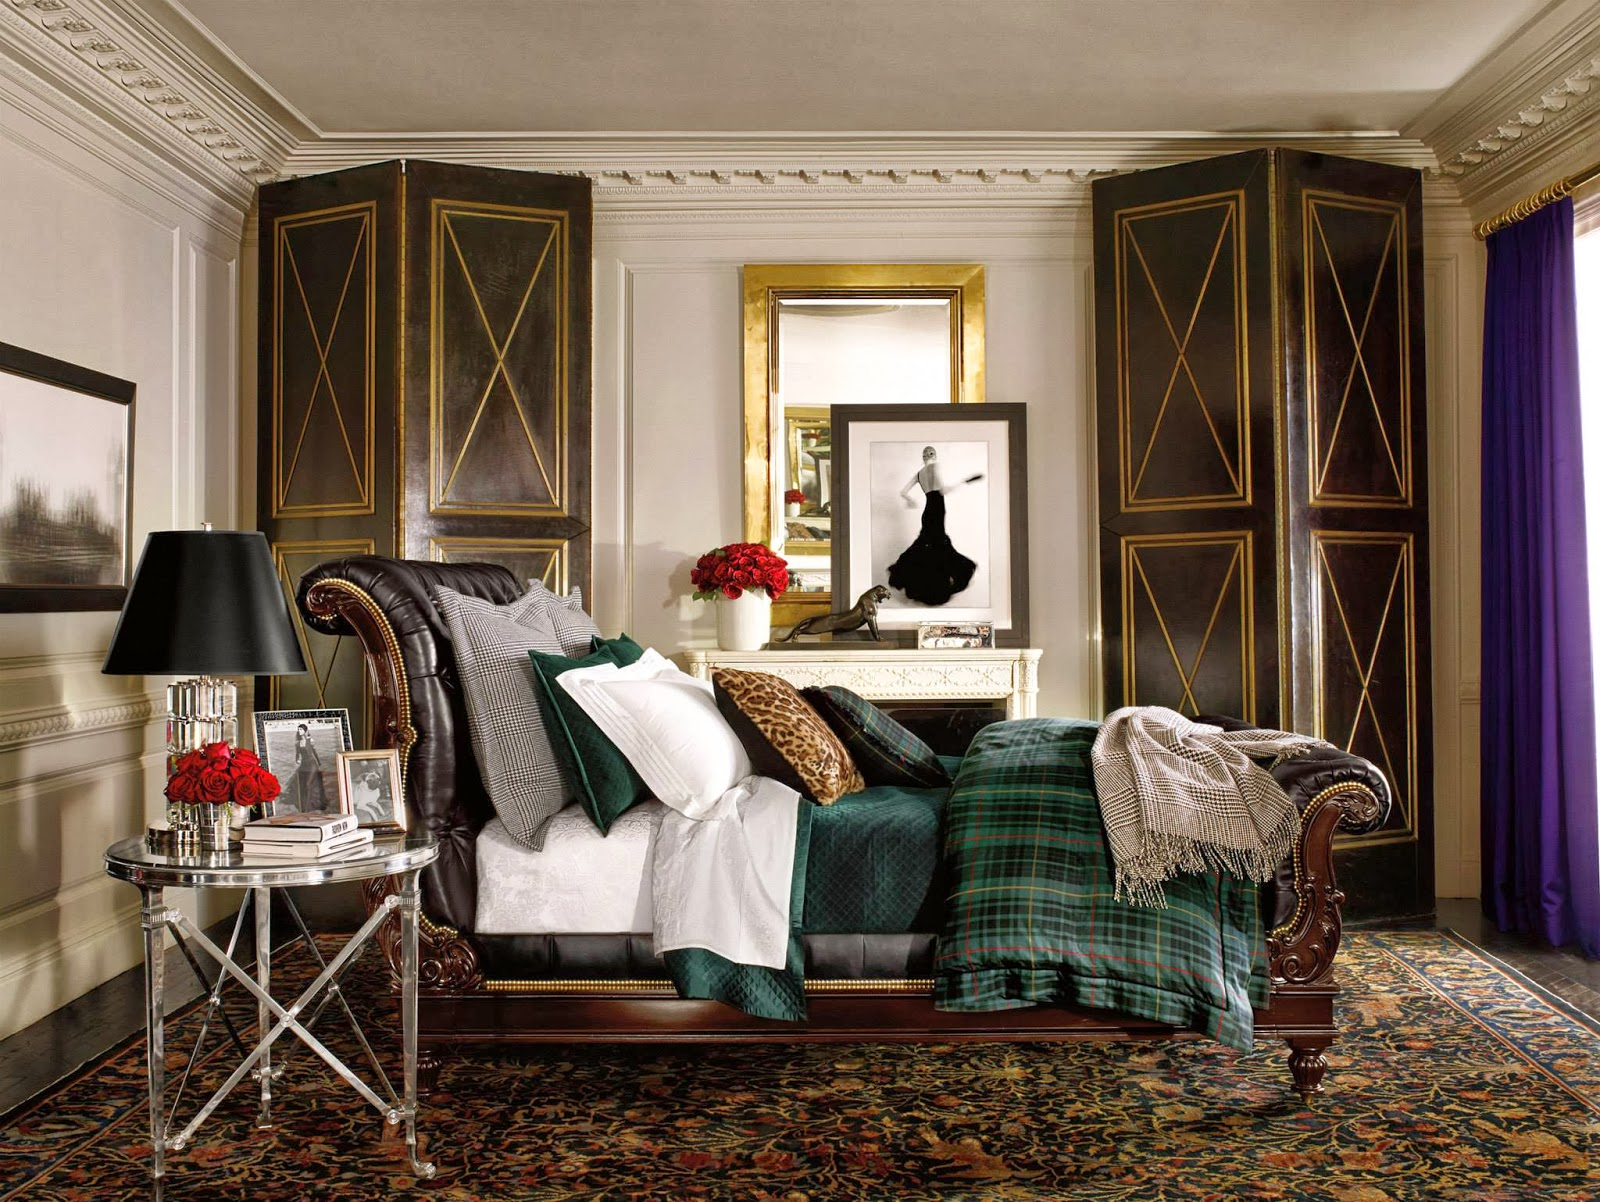 ralph lauren home apartment no one provocative woman. Black Bedroom Furniture Sets. Home Design Ideas